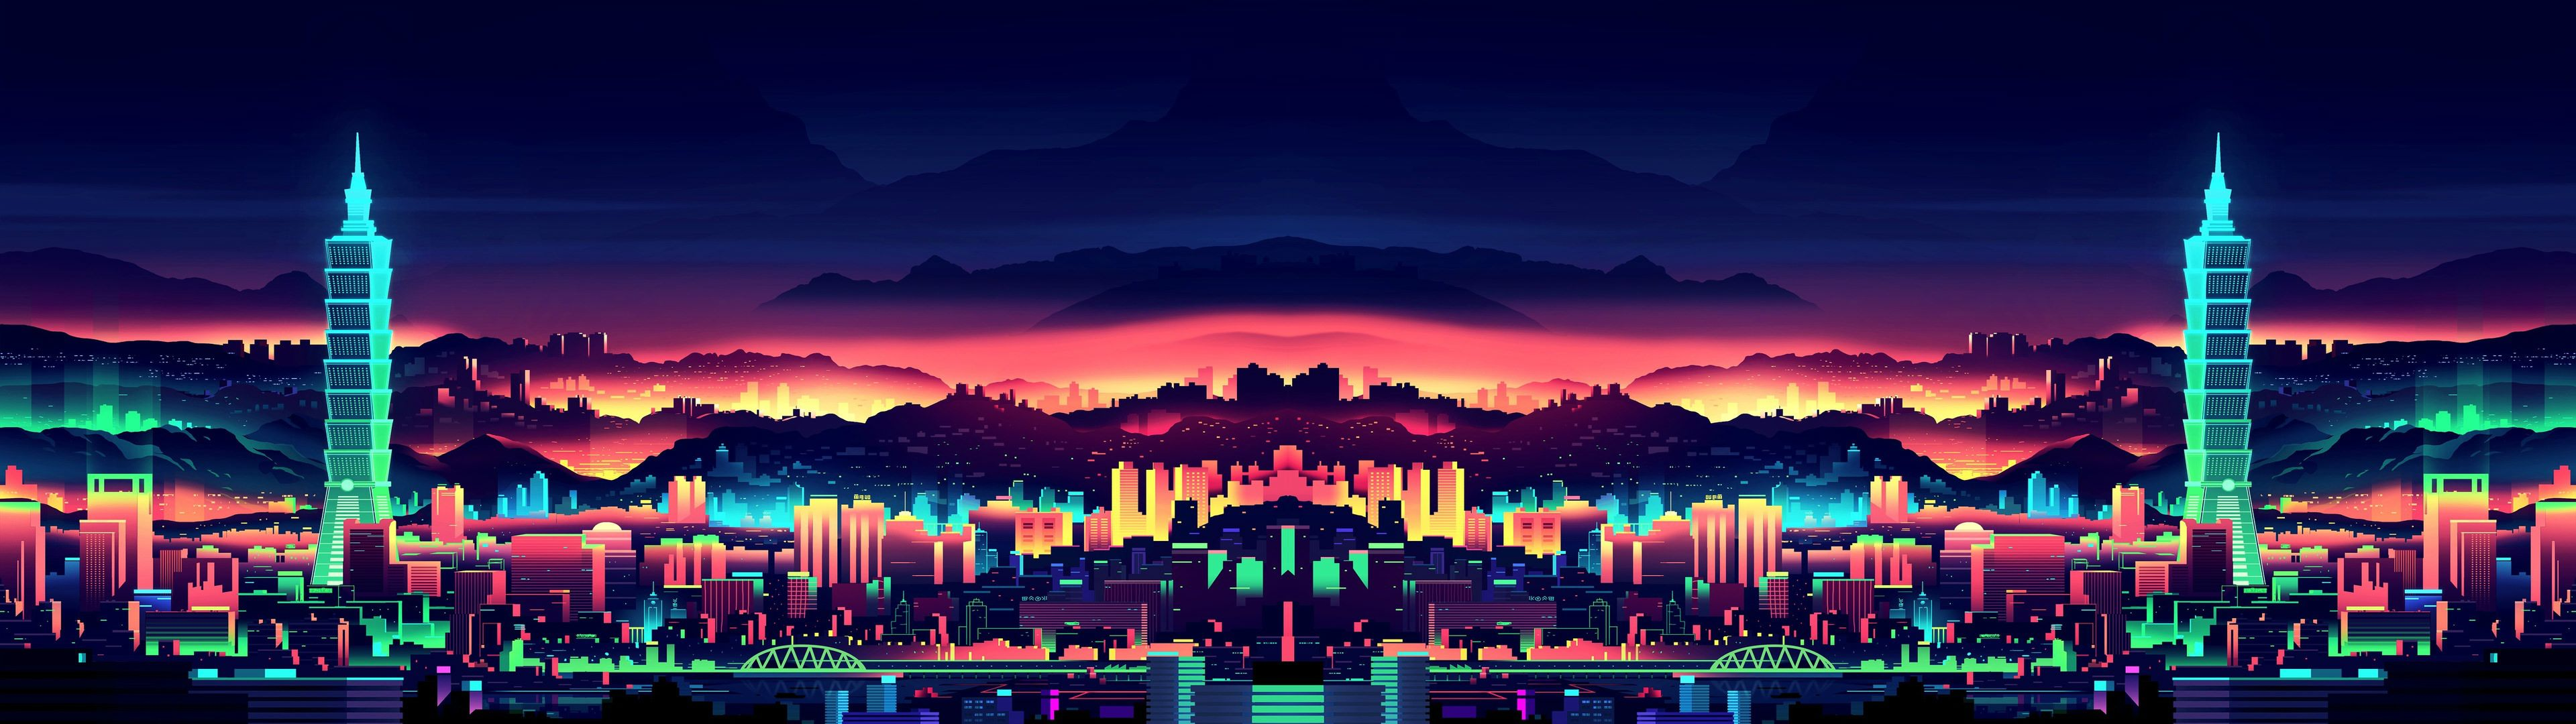 Neon city 3840x1080 wallpaper (1920x1080 versions included) | Reddit HD Wallpapers | 3840x1080 ...